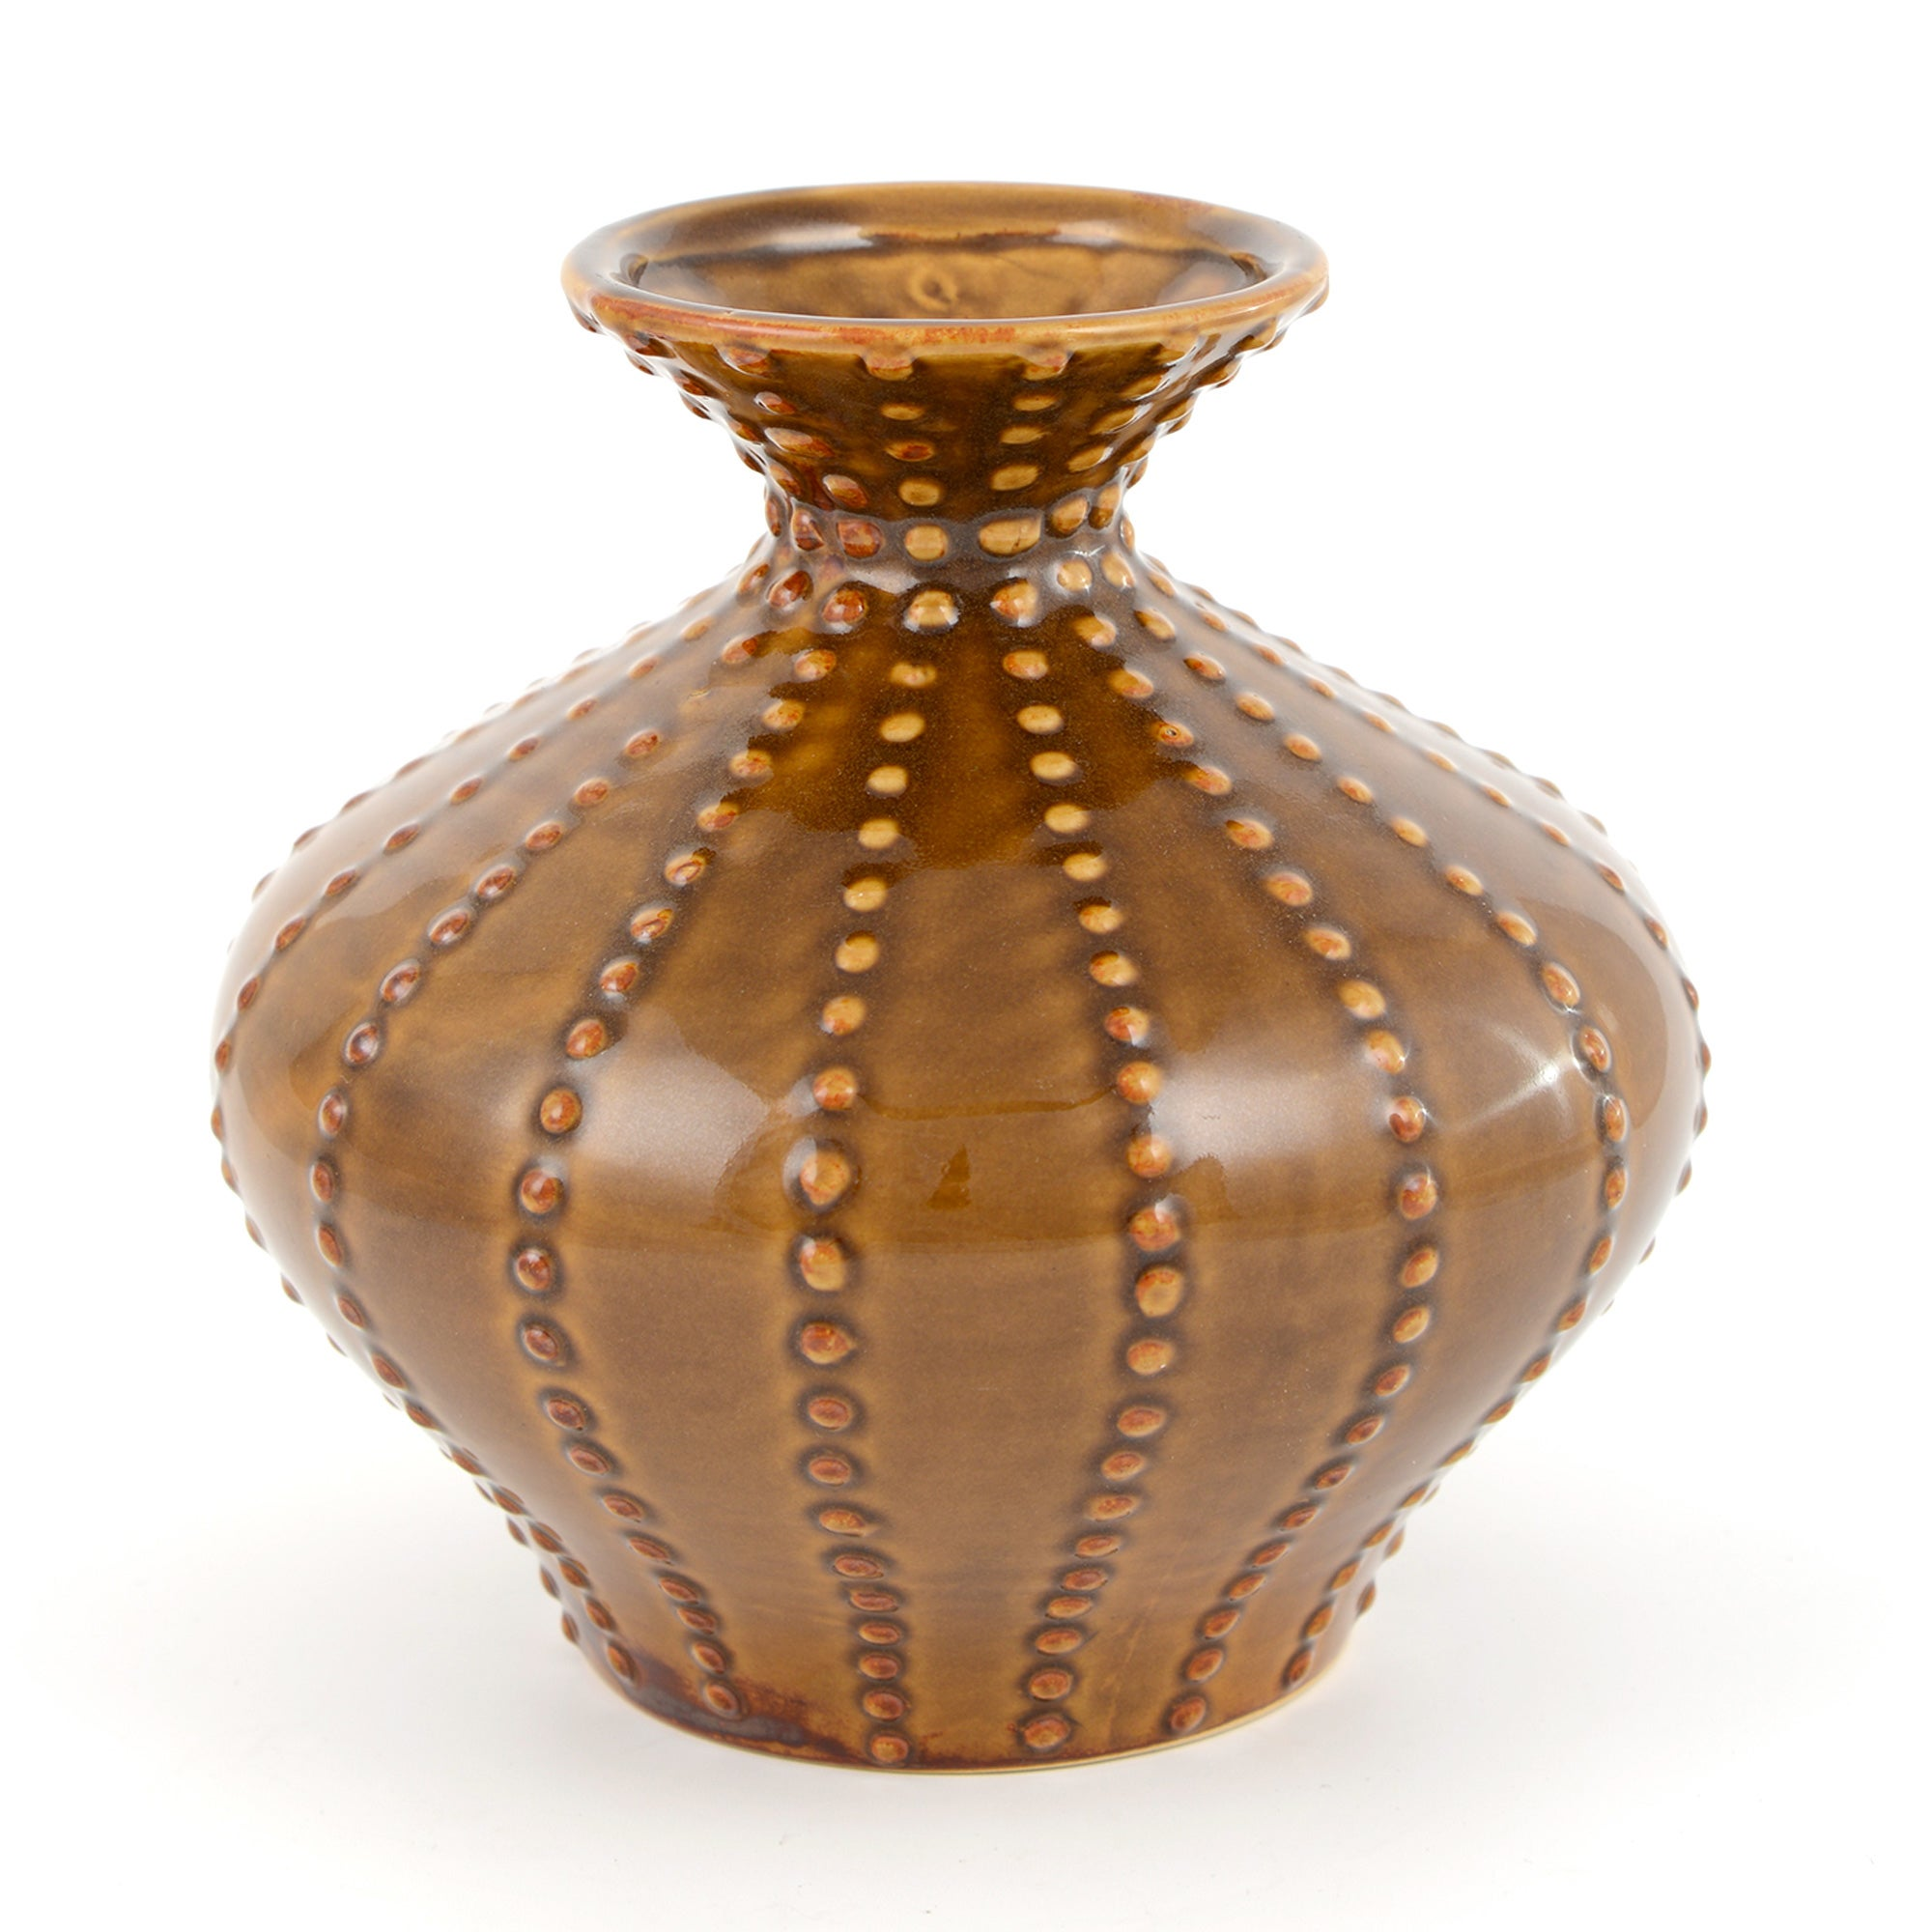 Global Fusion Collection Ochre Vase